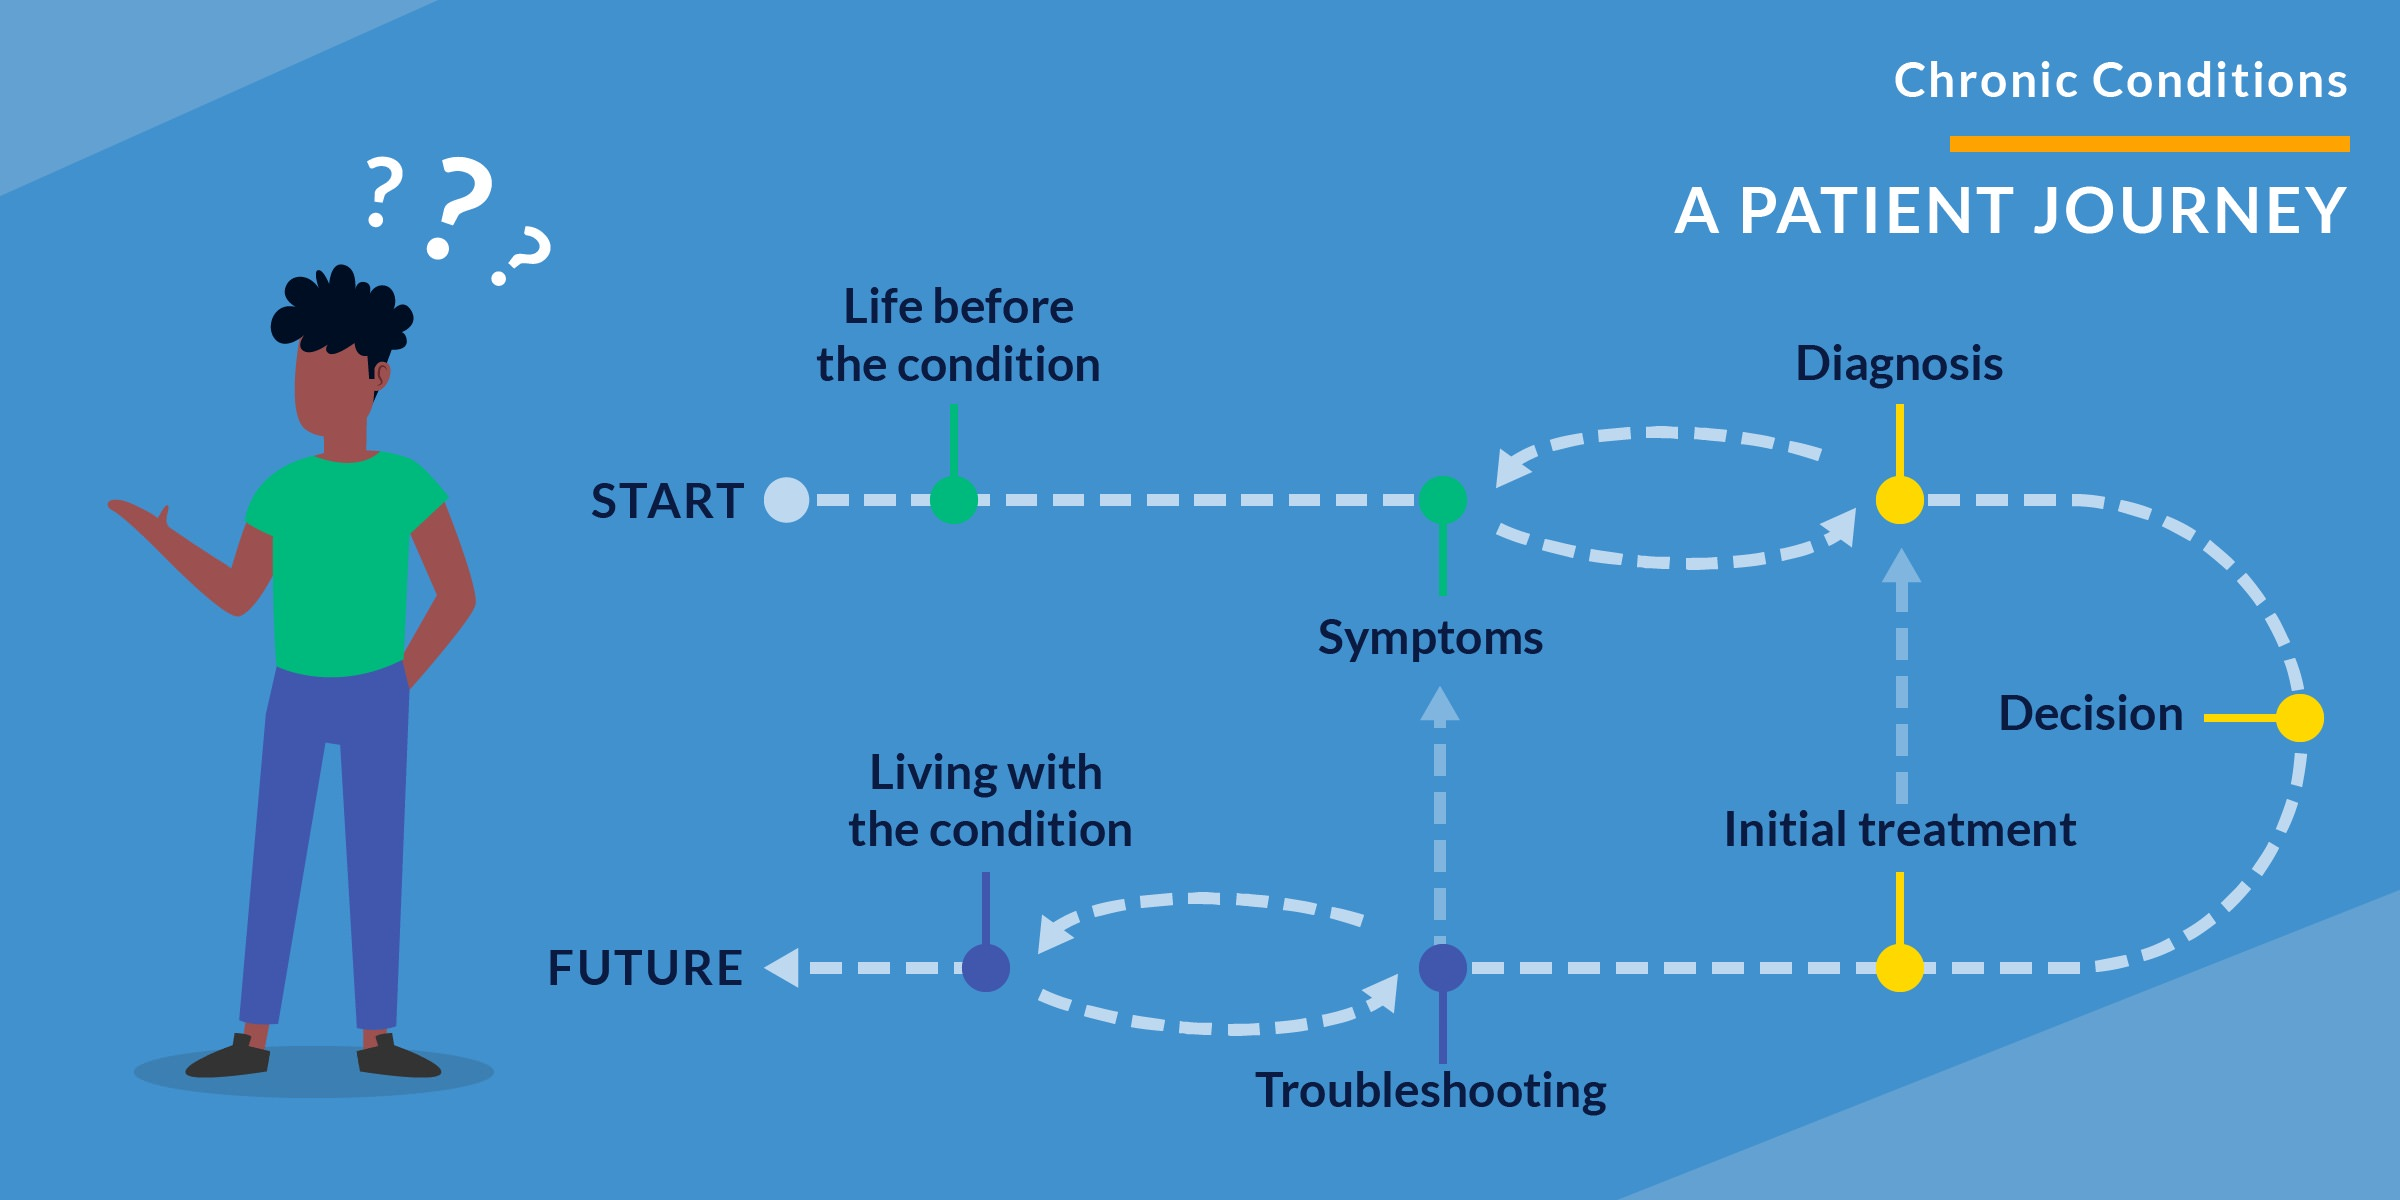 Chronic Conditions: A Patient Journey. An illustration of a person with question marks above their head on a blue background. A path leads through several dots representing stages of a journey. Start, life before the condition, symptoms, diagnosis, decision, initial treatment, troubleshooting, living with the condition, and the future. The path is cyclical between symptoms and diagnosis, and between troubleshooting and living with the condition. The path can double back or revert from troubleshooting to symptoms, or from initial treatment to diagnosis.